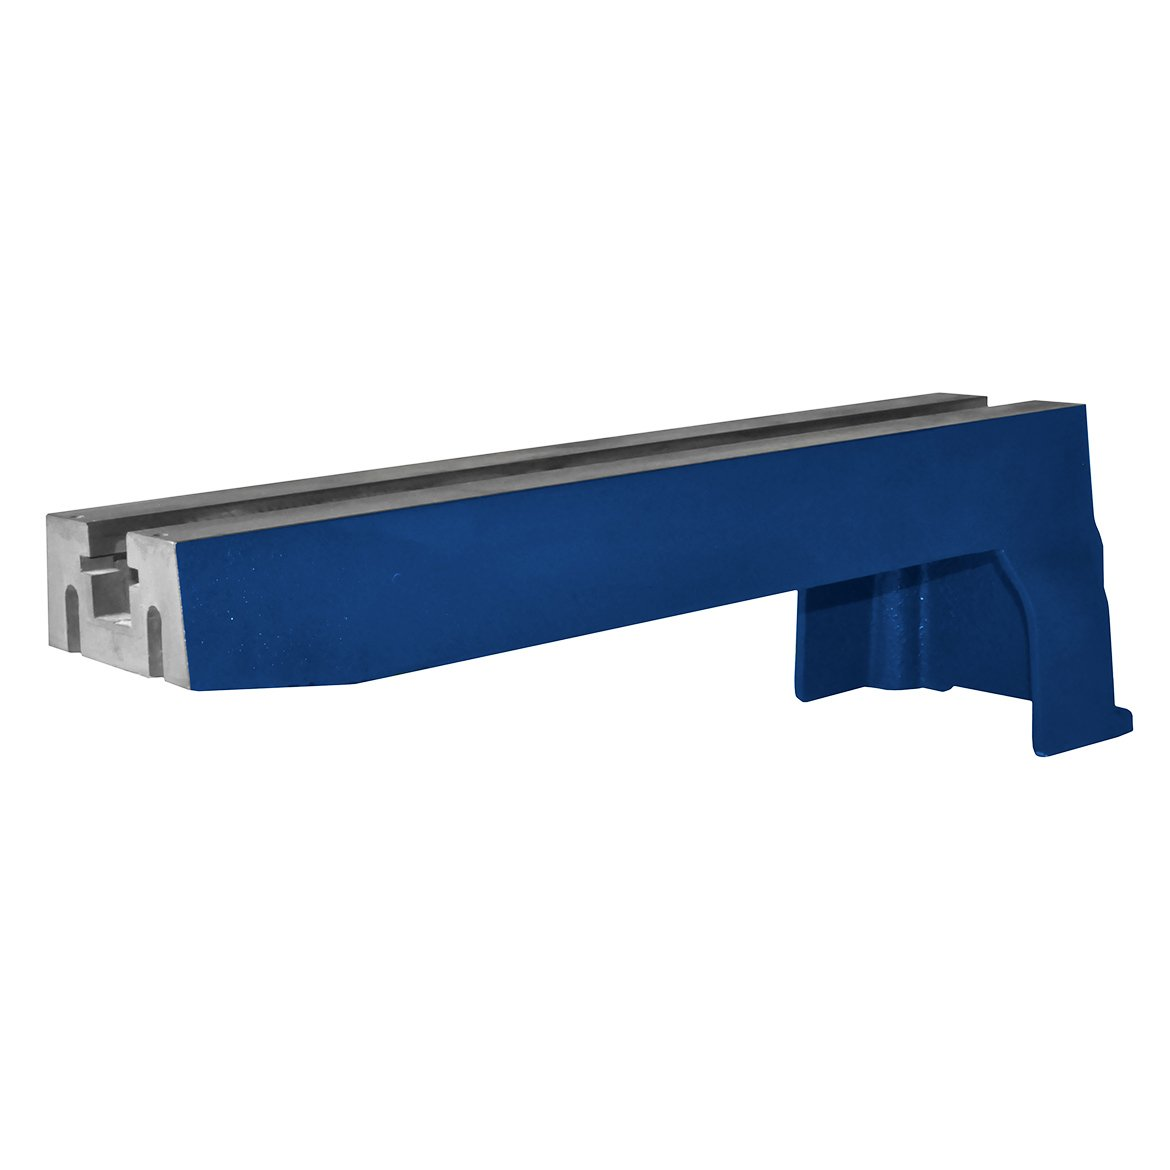 RIKON 70-900B 24-Inch Blue Durable Mini Lathe Extension Bed for 70-100 by Rikon (Image #1)